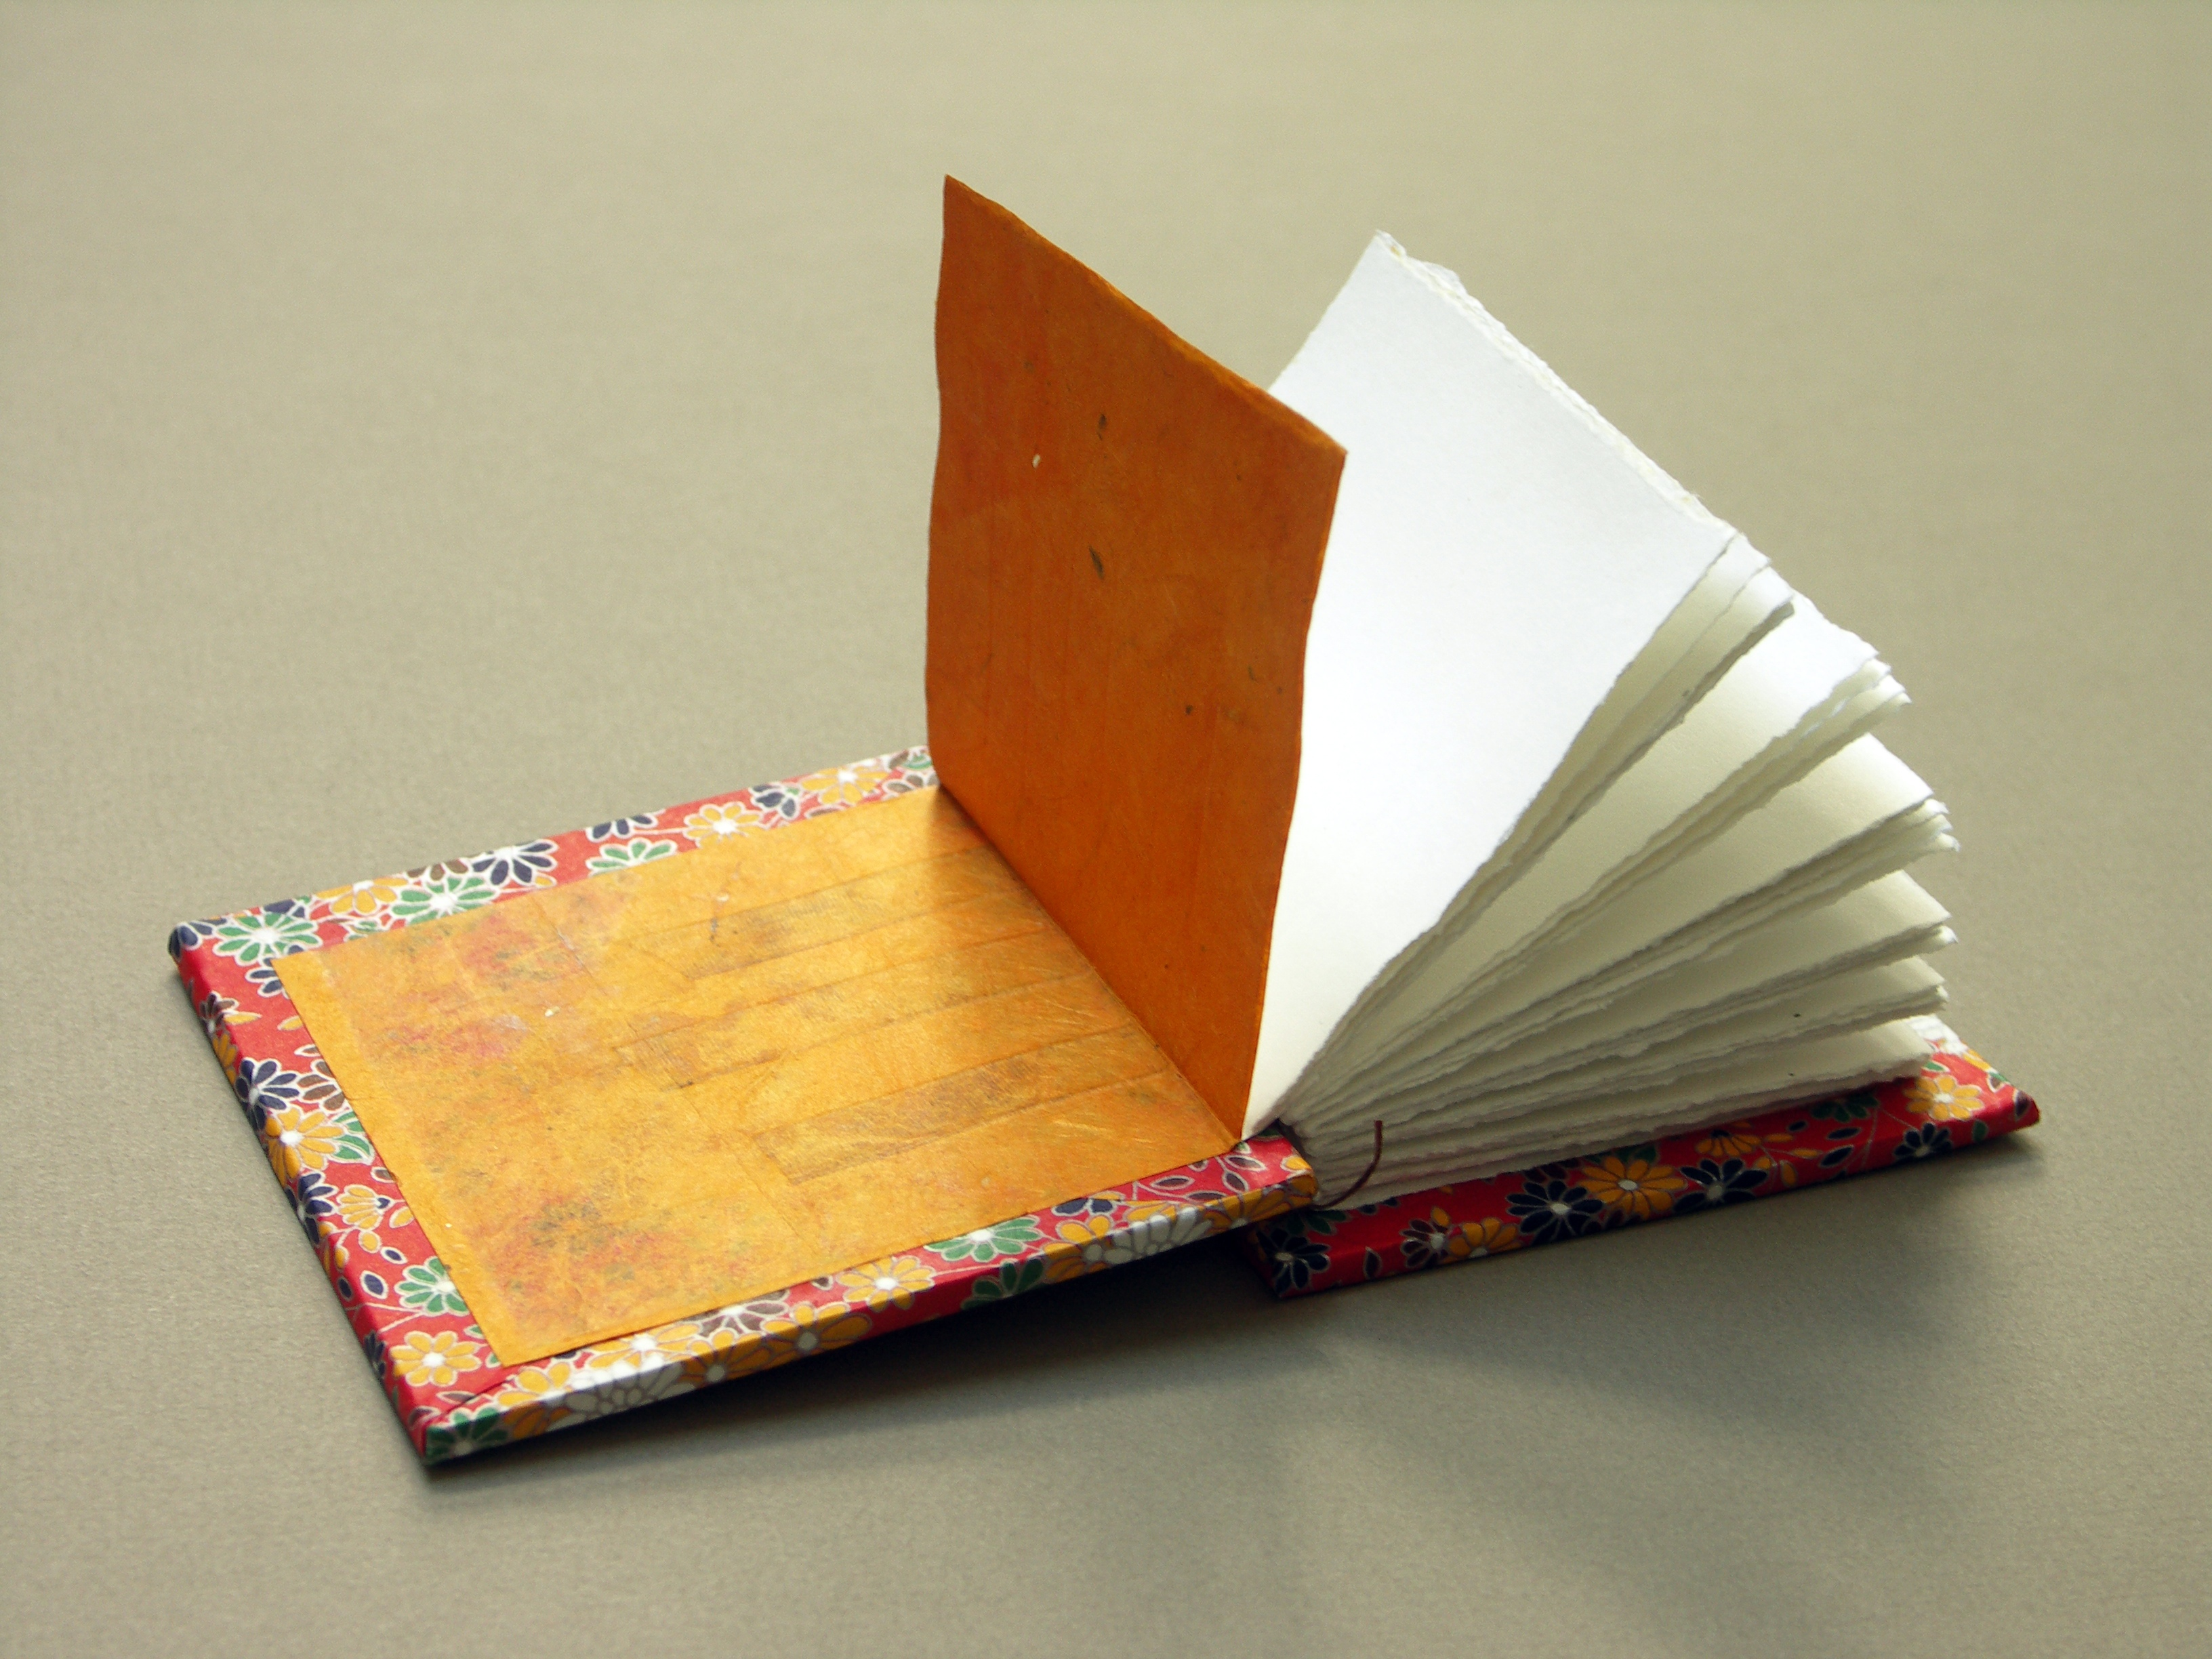 Mini Origami Paper Book Inside | Flickr - Photo Sharing! - photo#17